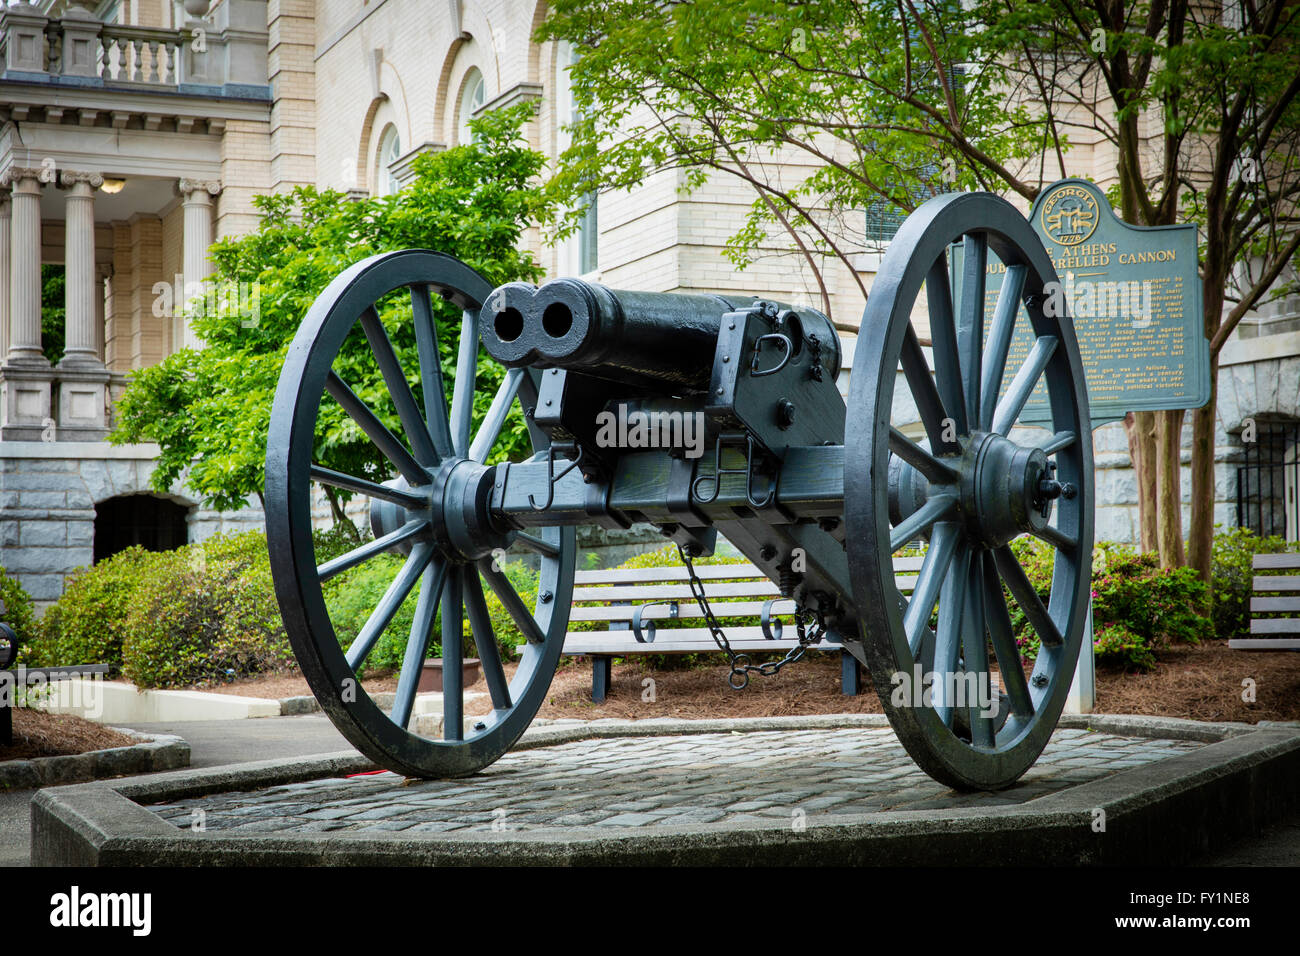 Infamous double-barreled Cannon - that never worked as planned, Athens, Georgia, USA - Stock Image